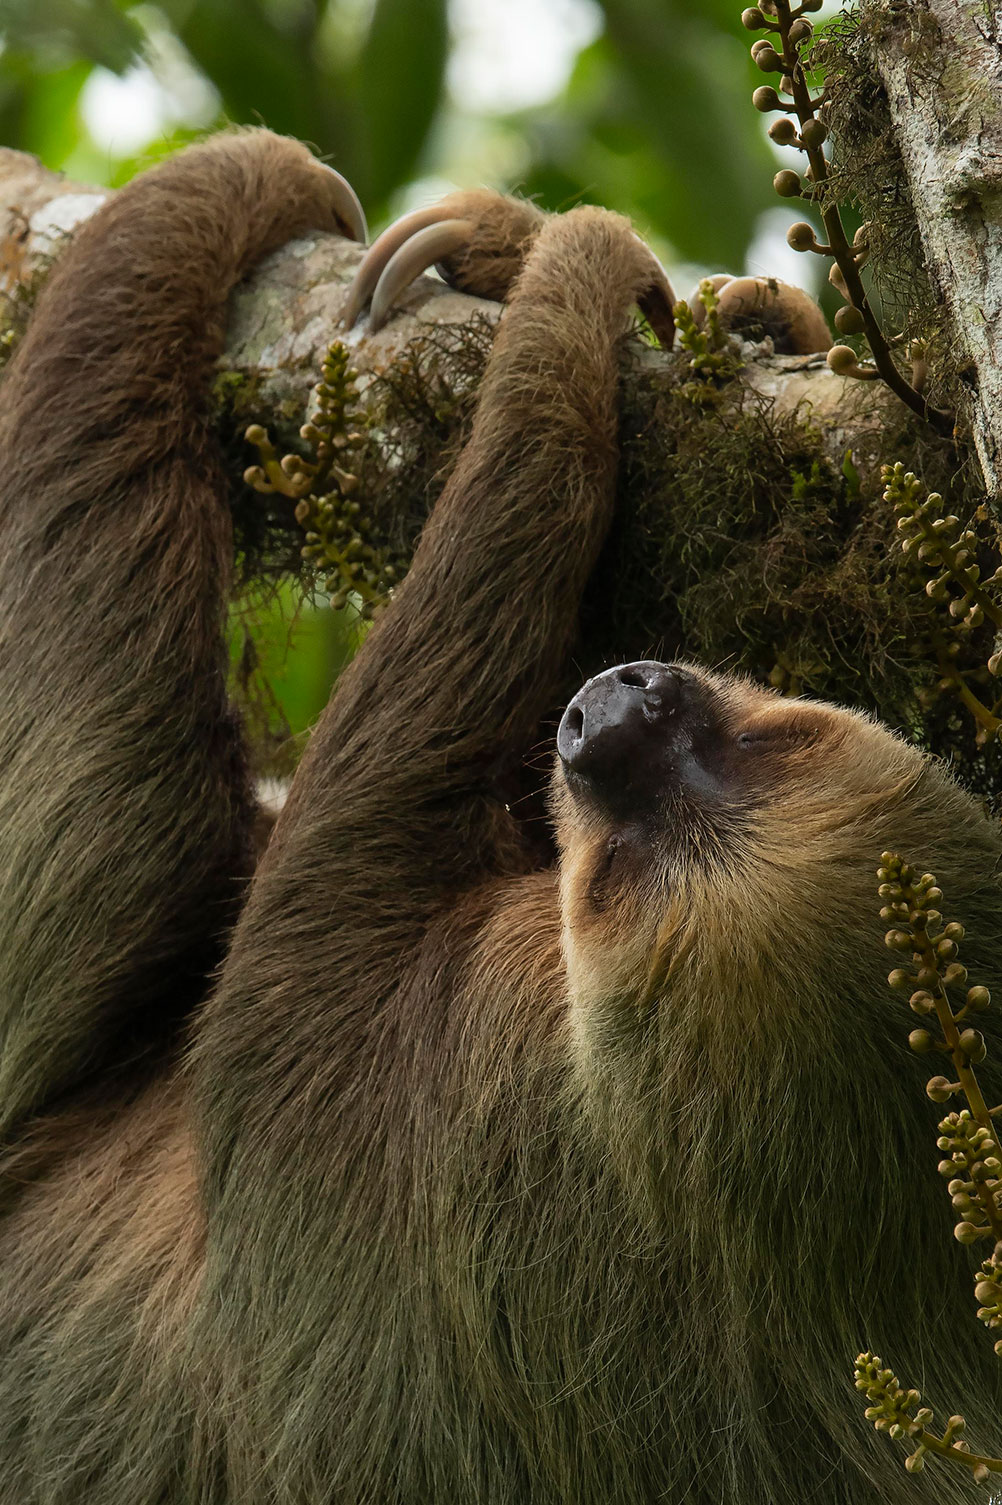 A sloth sleeps while hanging from a tree